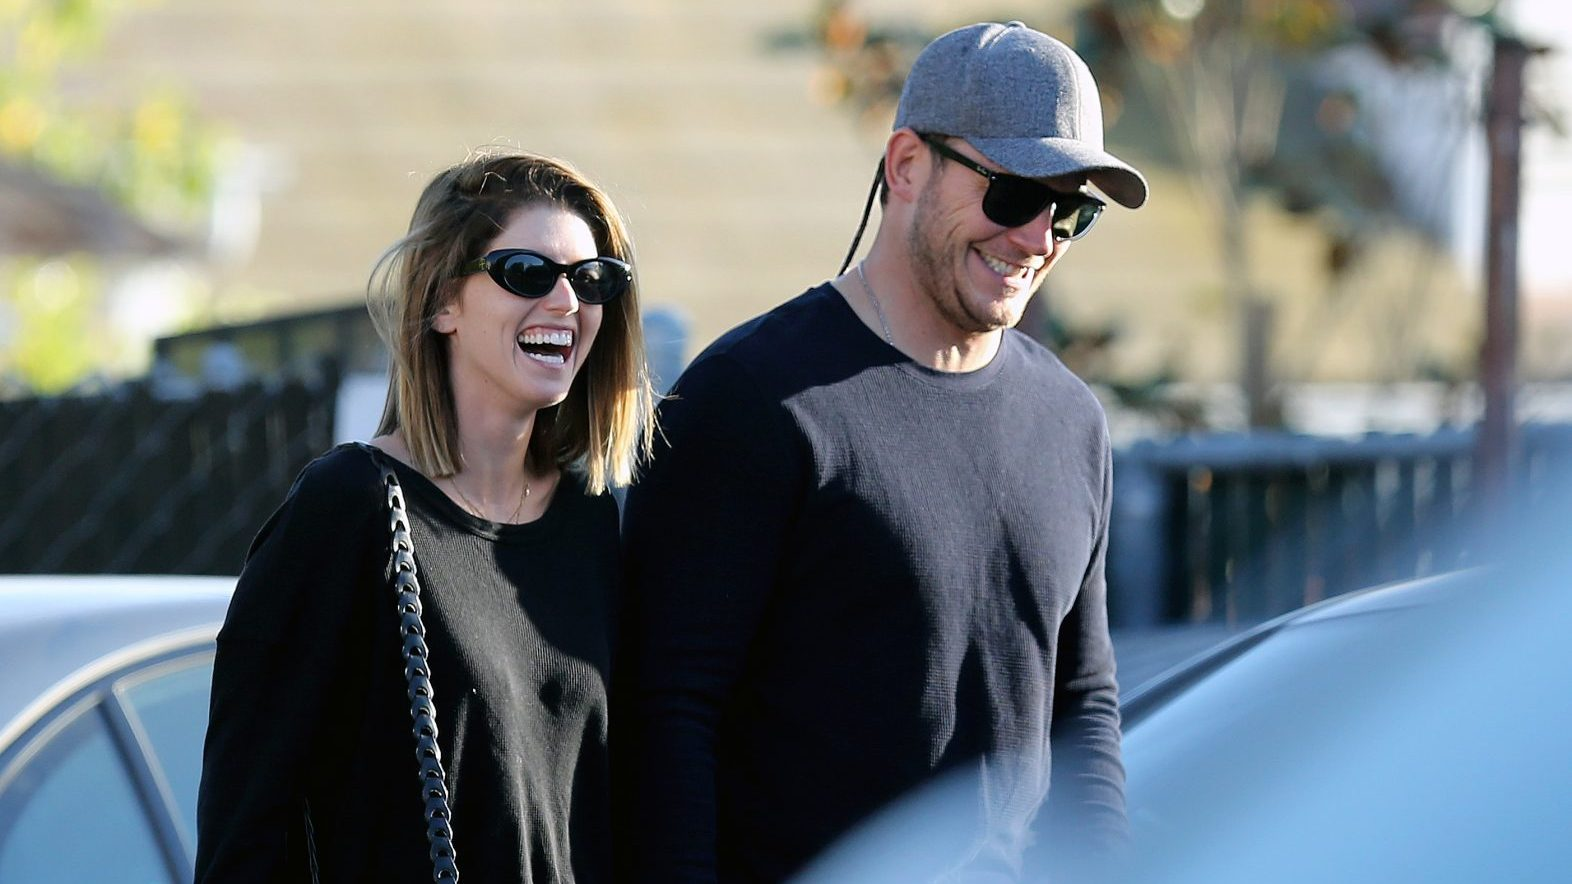 Chris Pratt and Katherine Schwarzenegger are Total #CoupleGoals While Holding Hands in L.A.